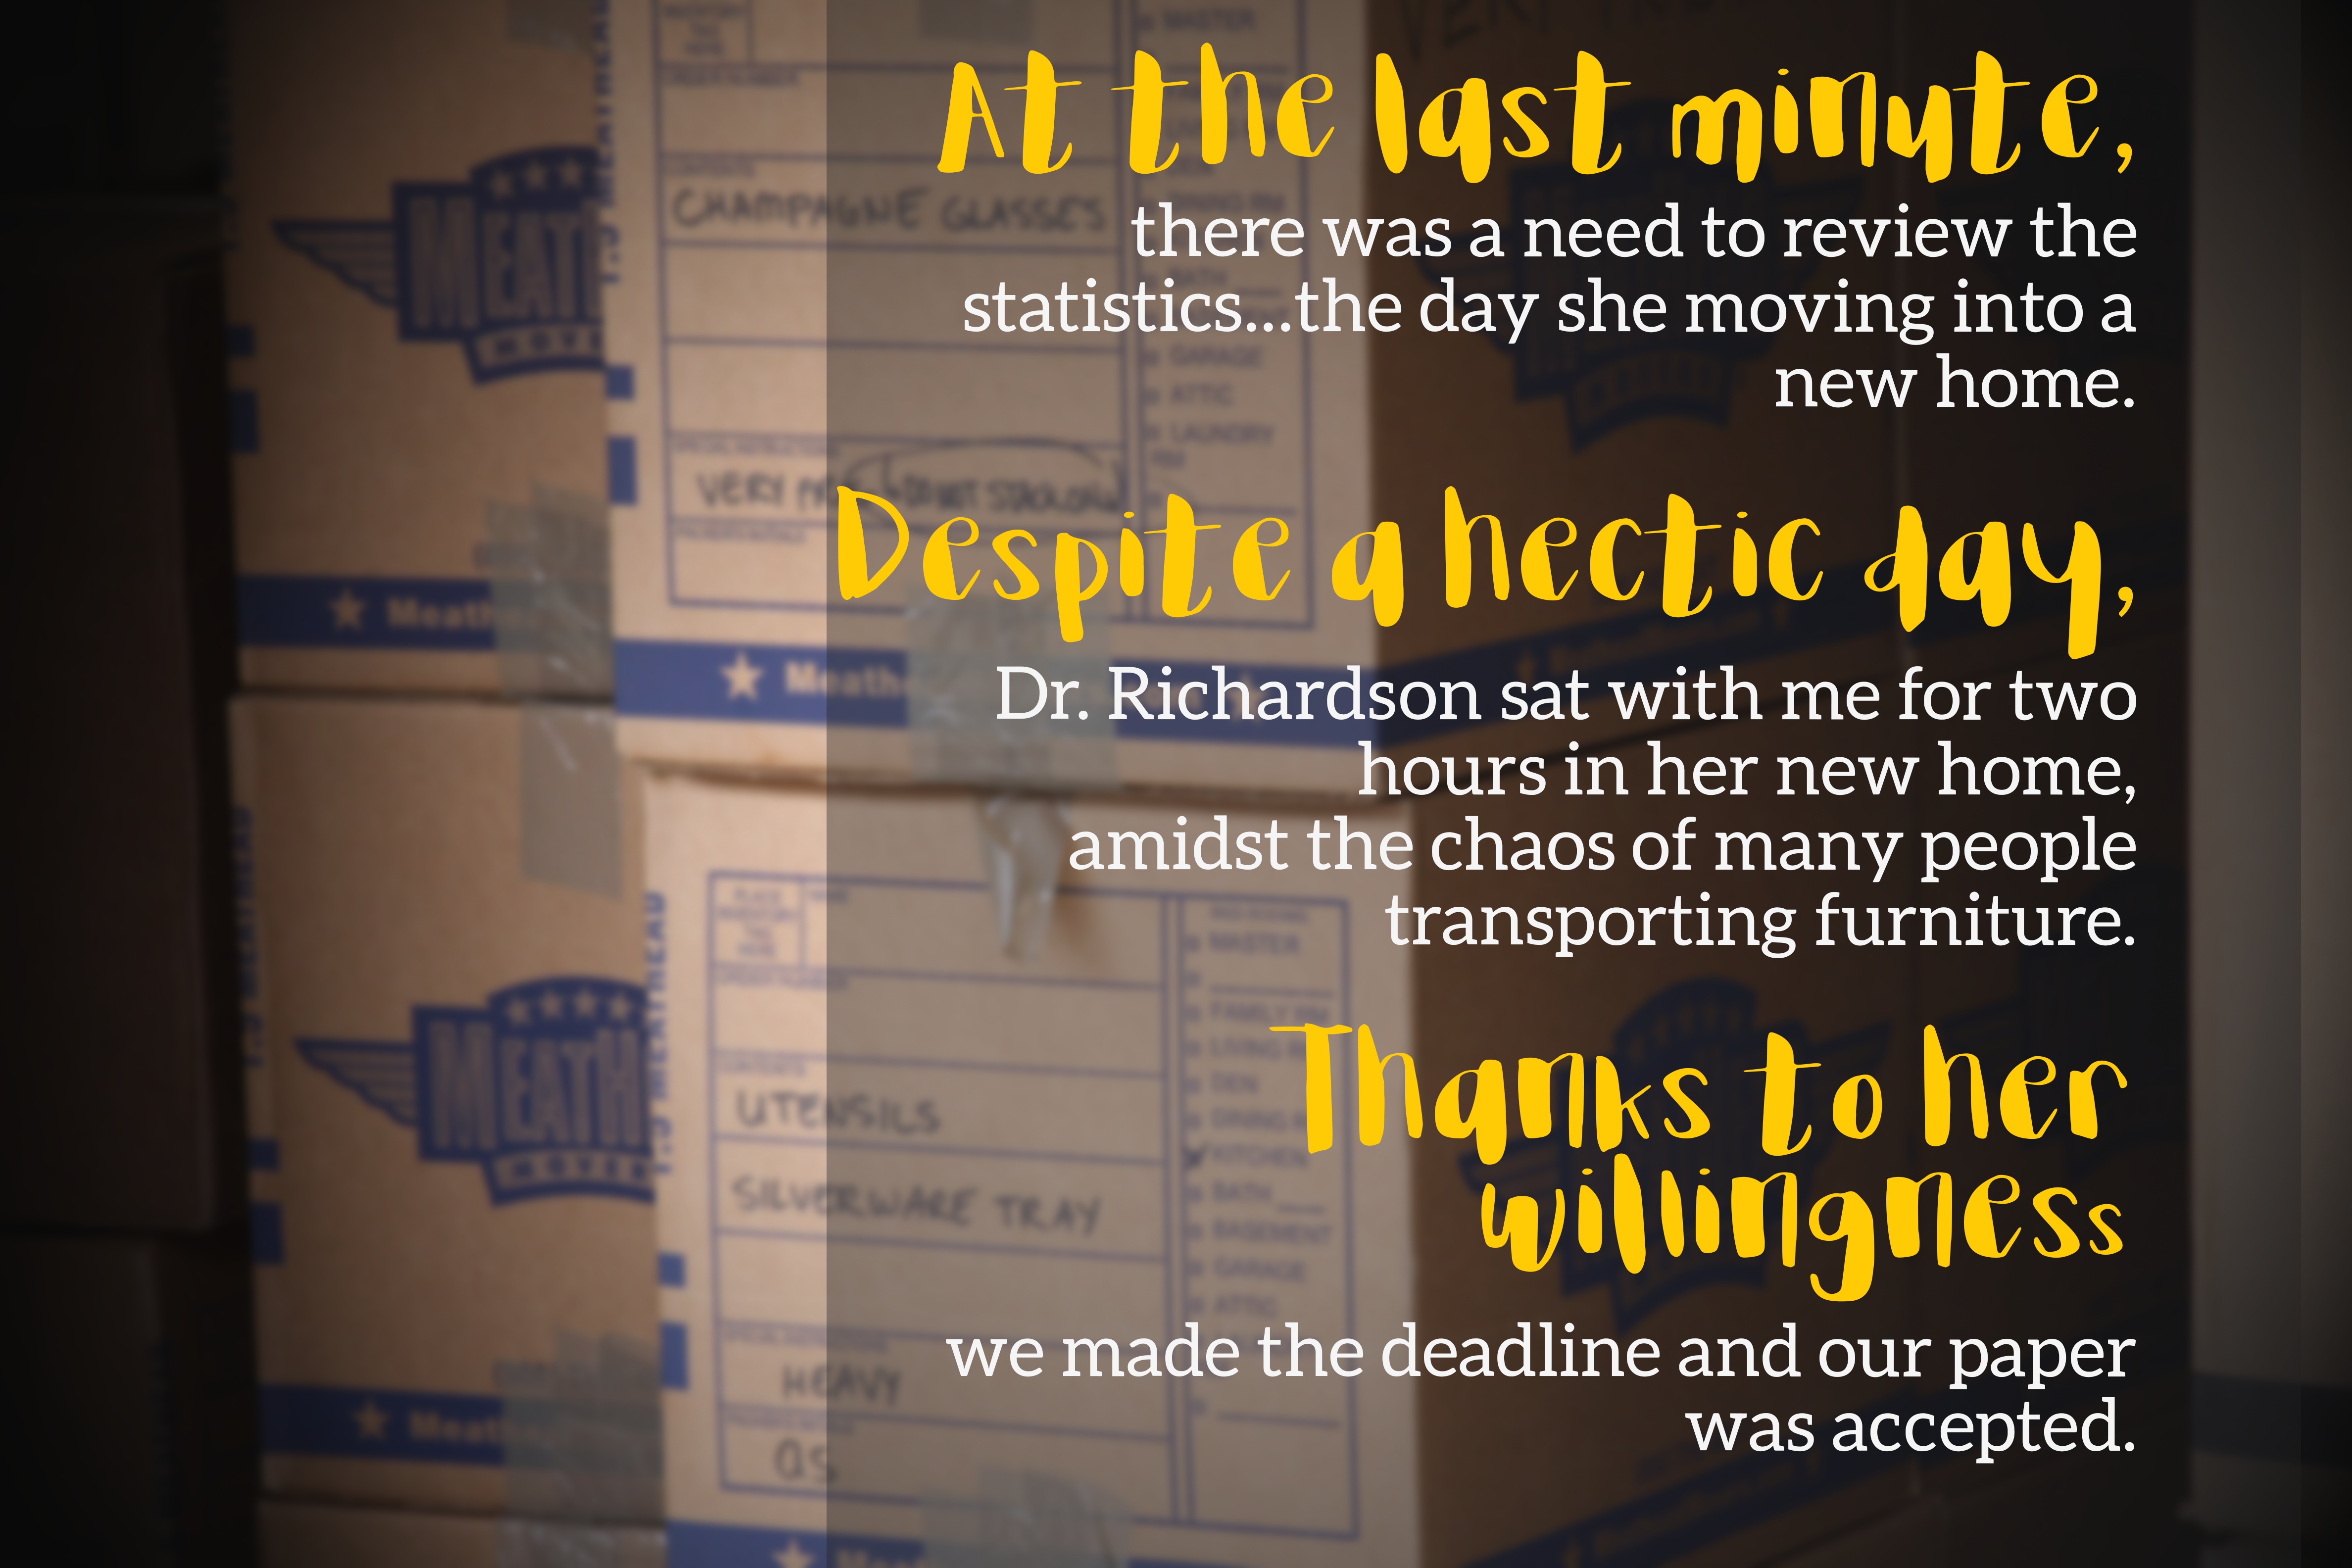 image of moving boxes with quote At the last minute, there was a need to review the statistics...the day she moving into a new home.   Despite a hectic day, Dr. Richardson sat with me for two hours in her new home, amidst the chaos of many people transpo